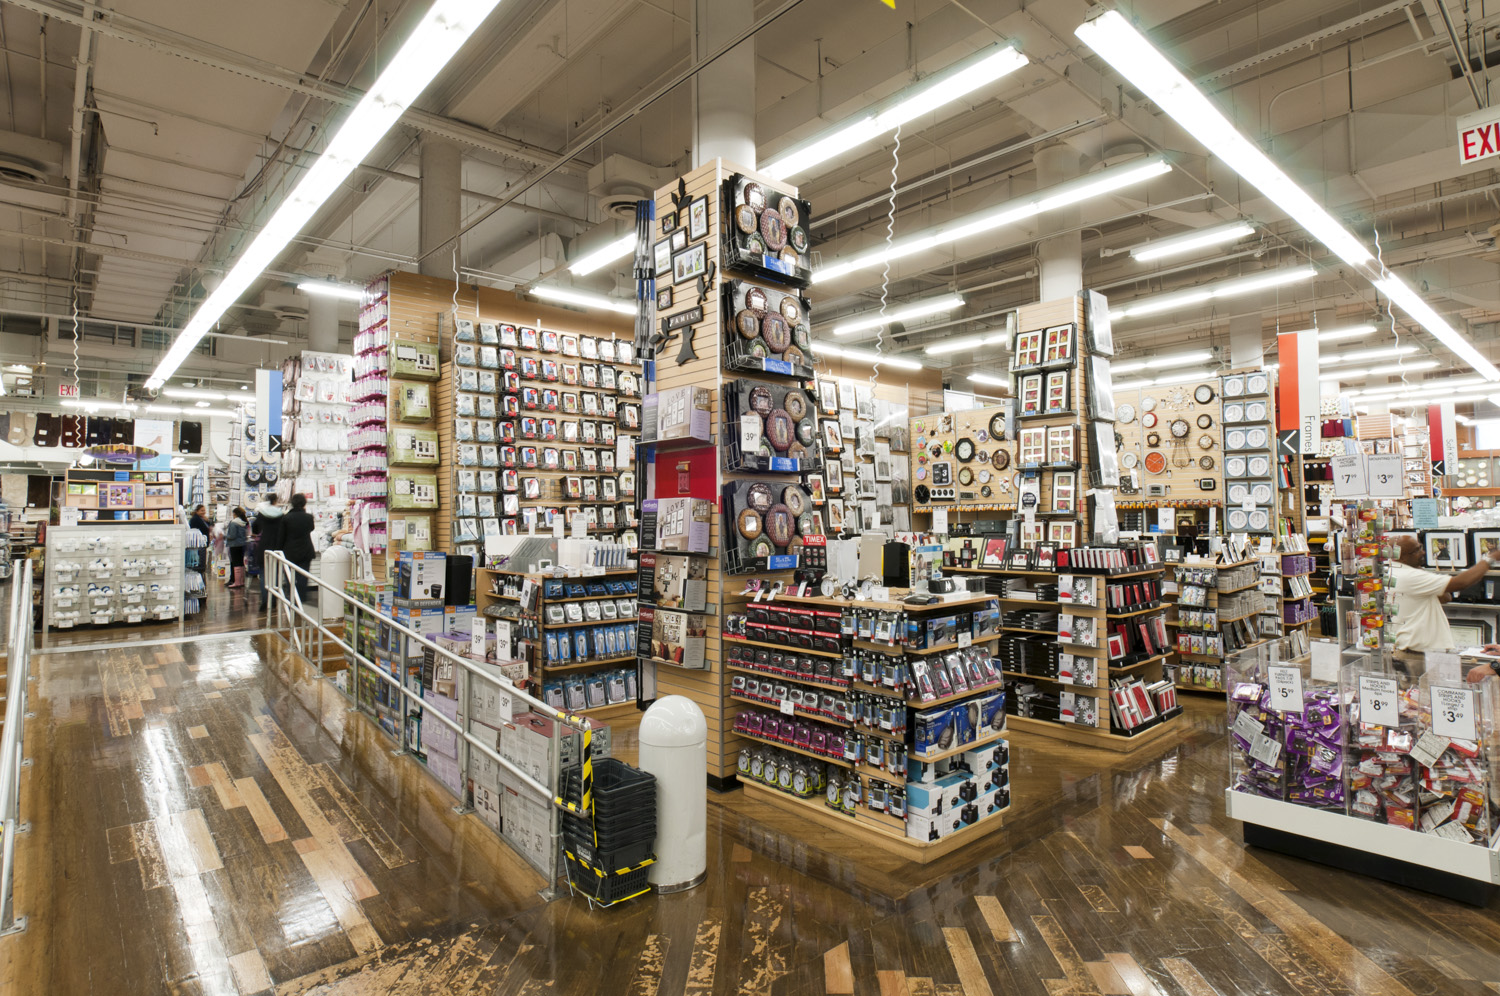 bed, bath and beyond, nyc | adam kane macchia photo